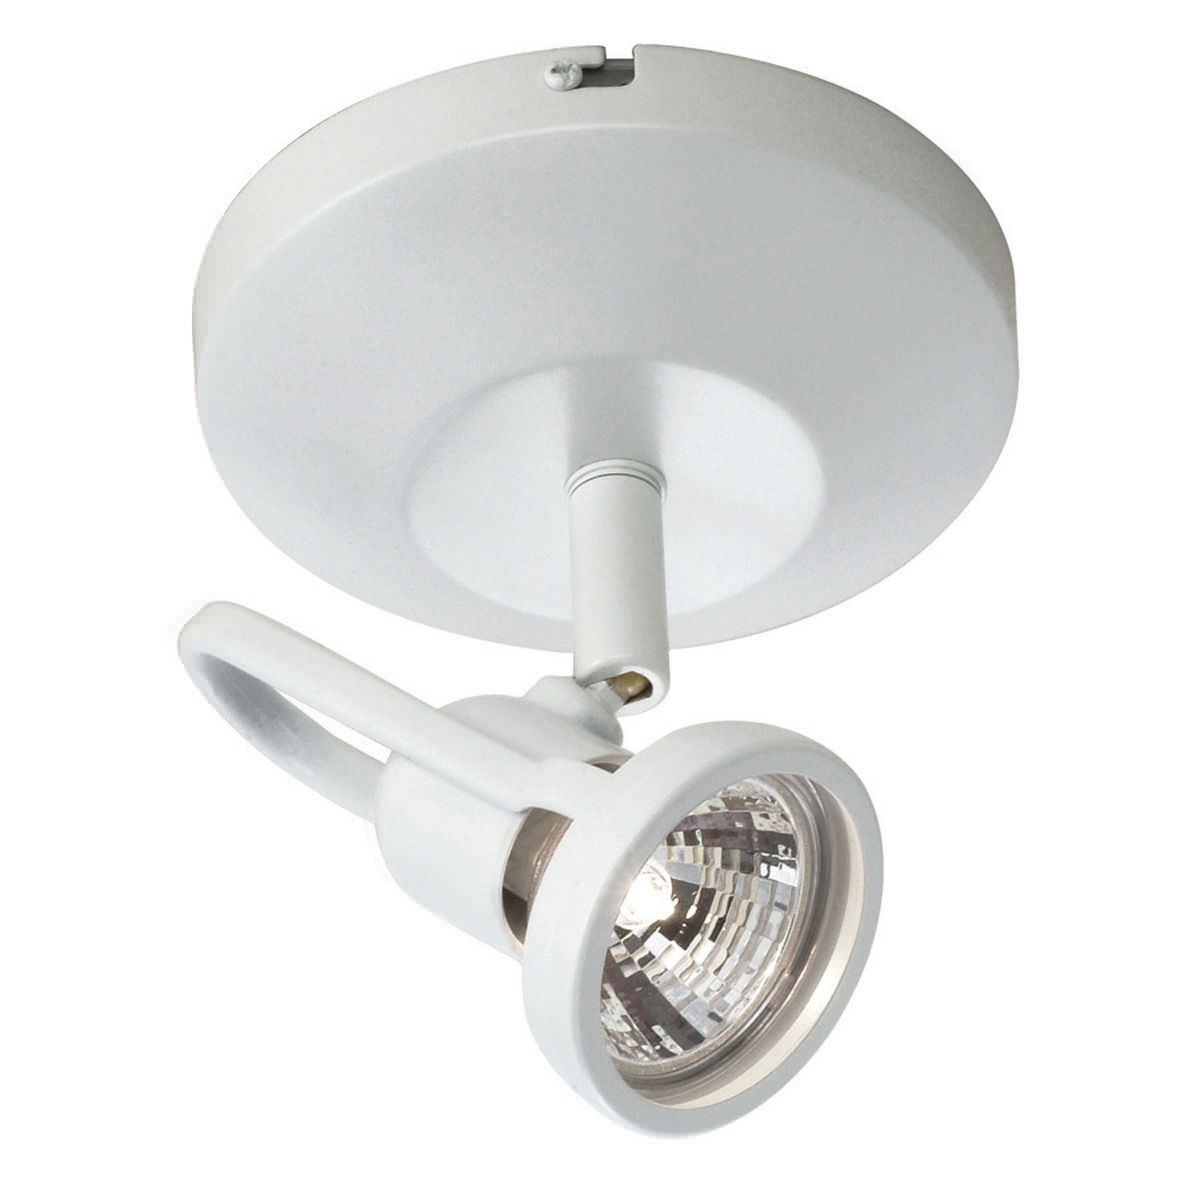 Ceiling mounted spotlight indoor halogen round me 826 ceiling mounted spotlight indoor halogen round me 826 mozeypictures Choice Image